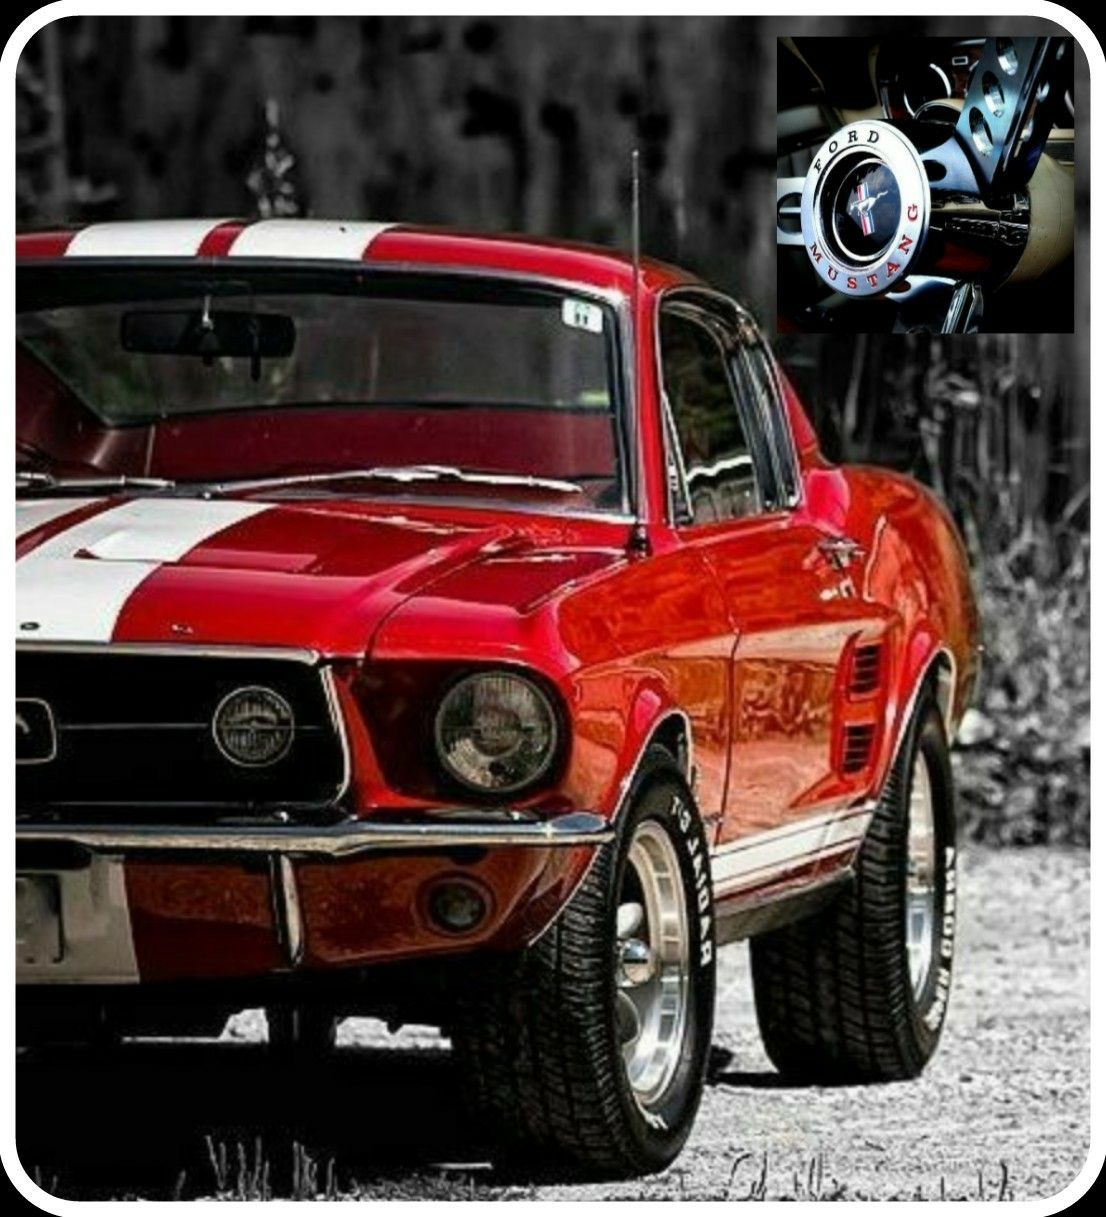 Pin By Anas On Grate Things Ford Mustang 1967 Ford Mustang Mustang Cars